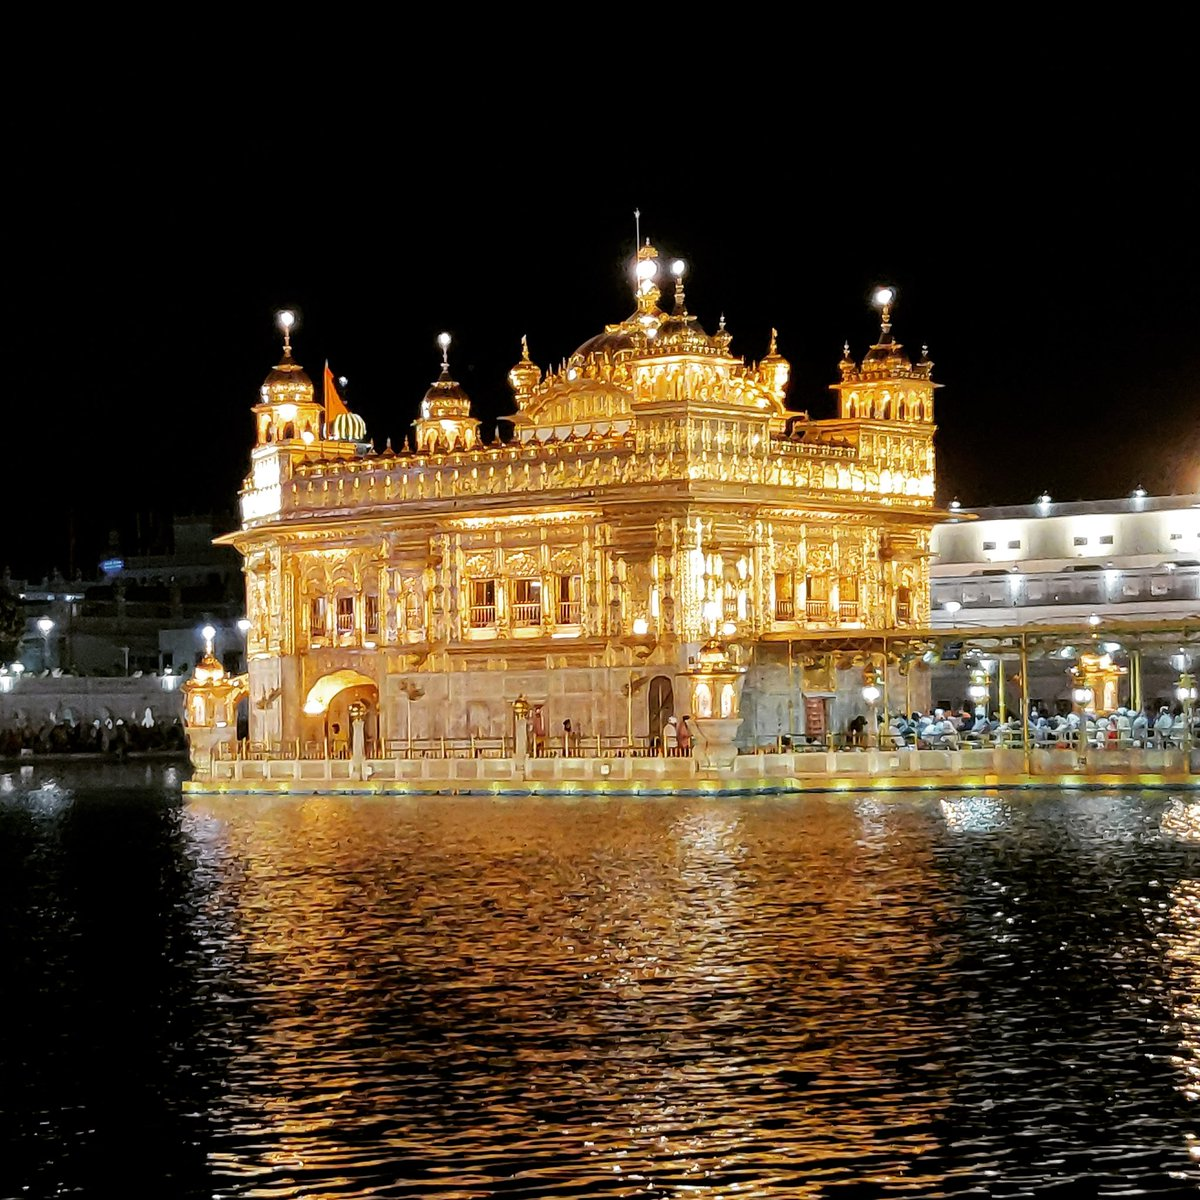 Satnam Waheguru!!!  #goldentemple #peaceofmind #travelphotography https://t.co/6ihPSeu8Mf